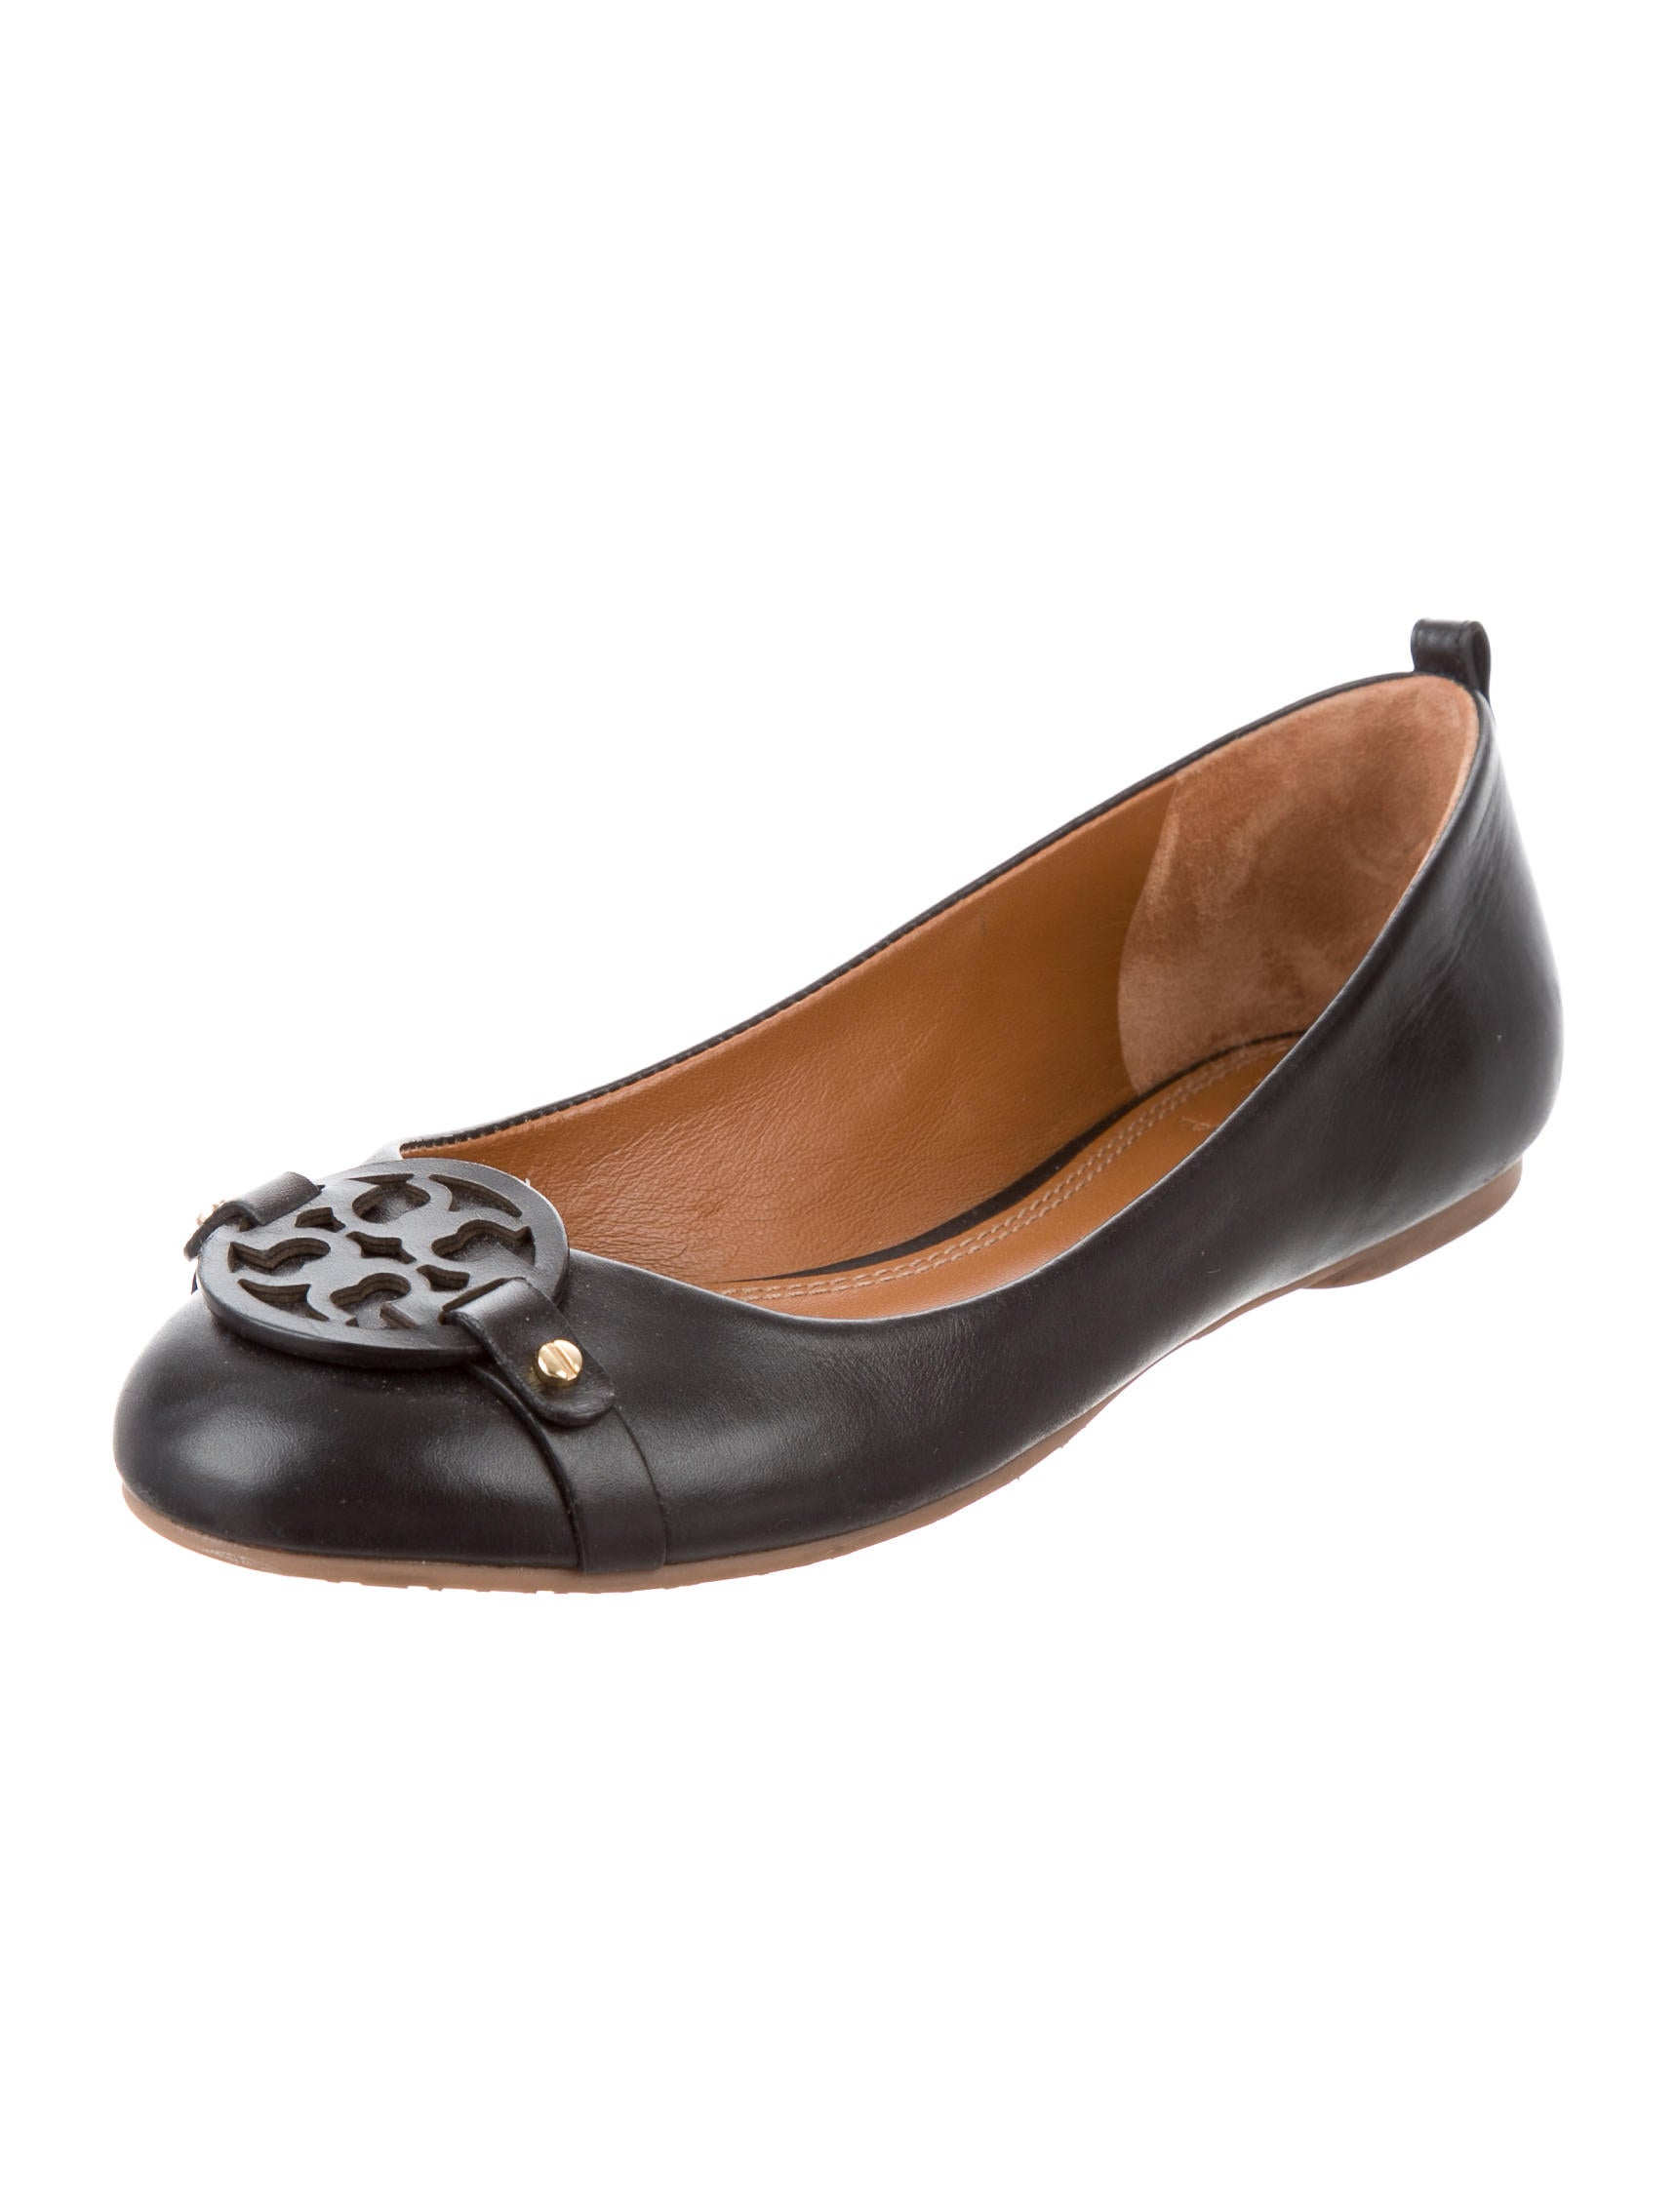 tory burch logo ballet flats shoes wto108334 the realreal. Black Bedroom Furniture Sets. Home Design Ideas